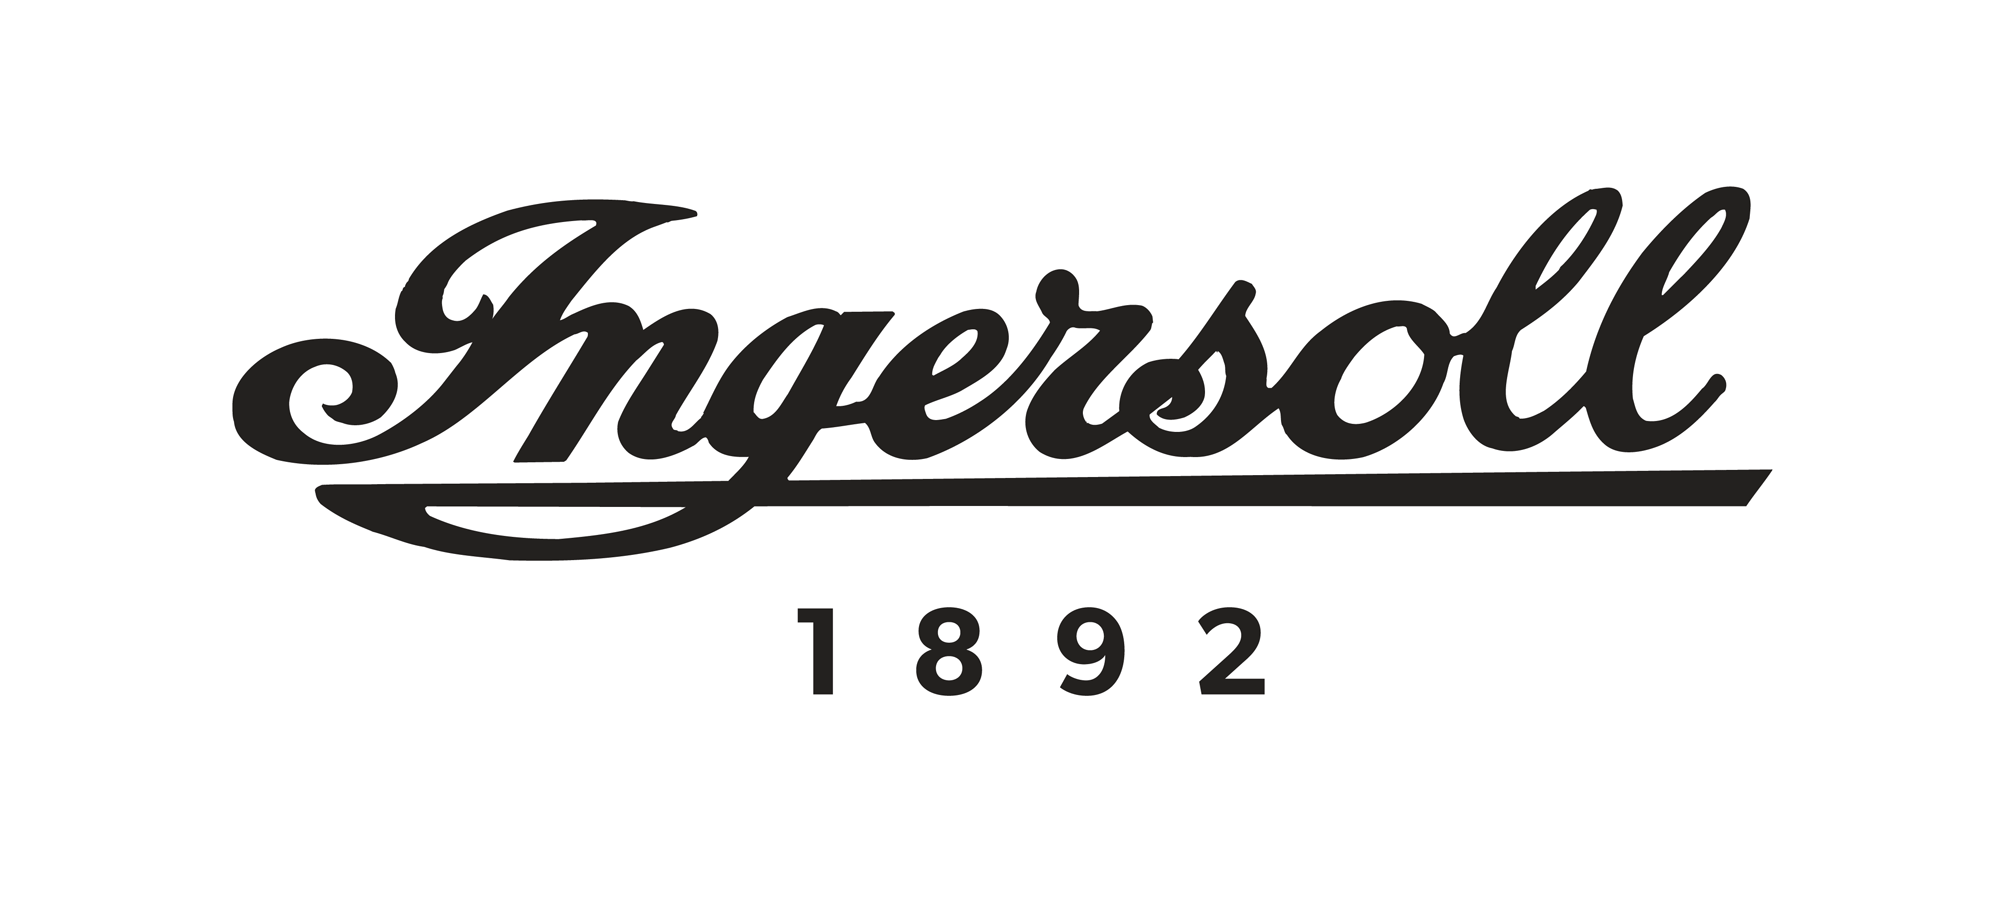 New Identity for Ingersoll by A New Kind of Kick